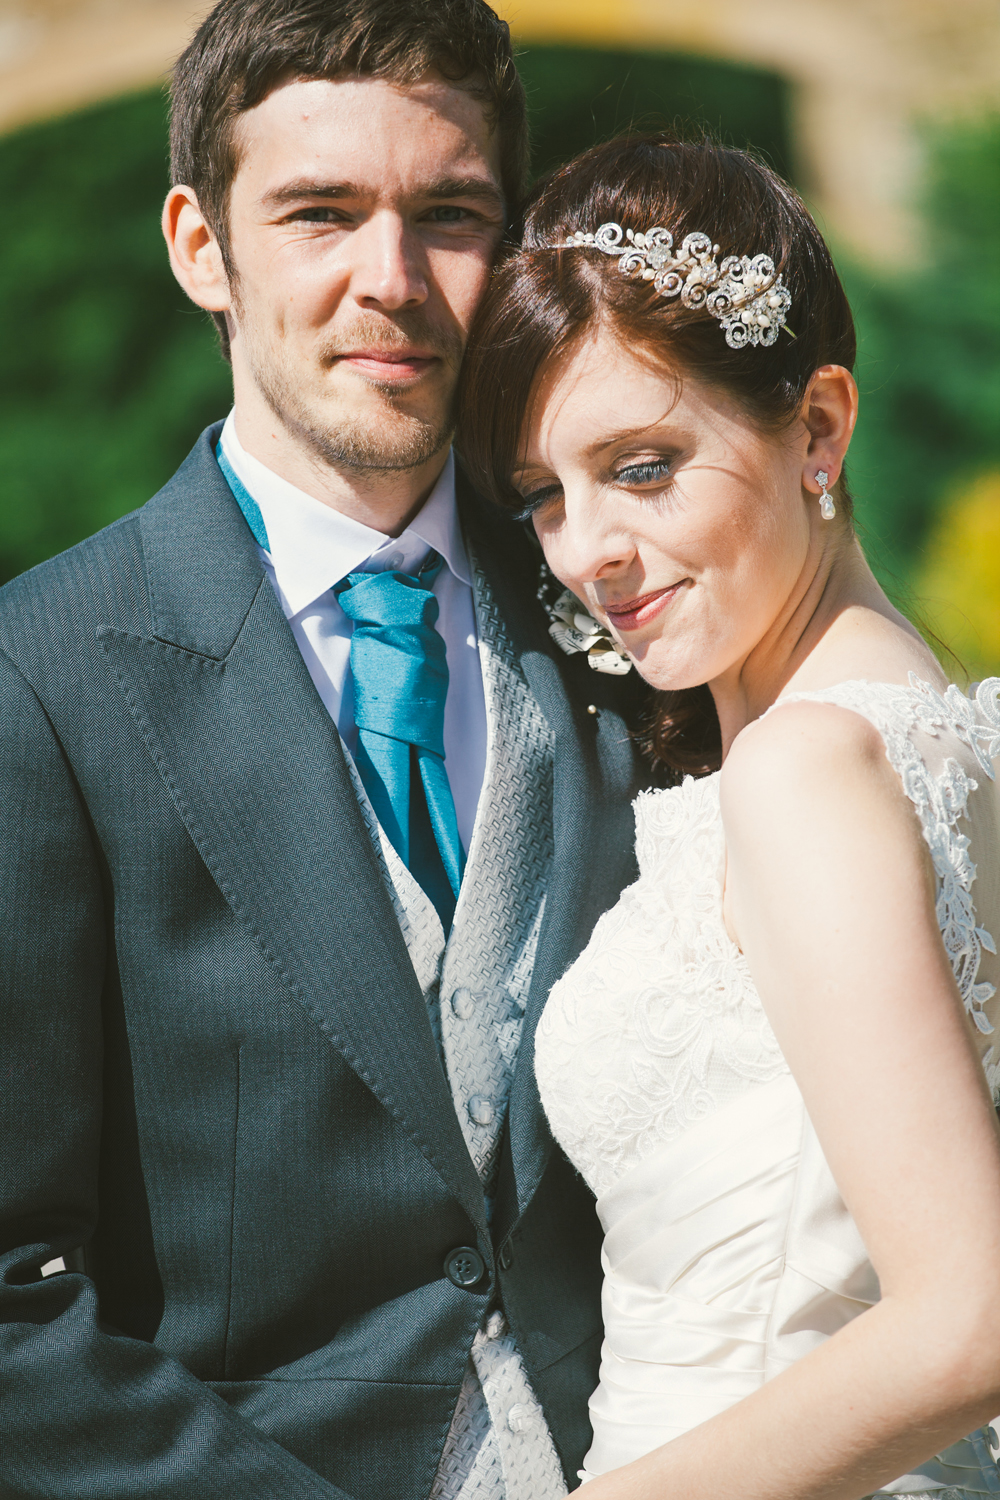 wedding+photographers+in+sheffield+yorkshire+(25).jpg